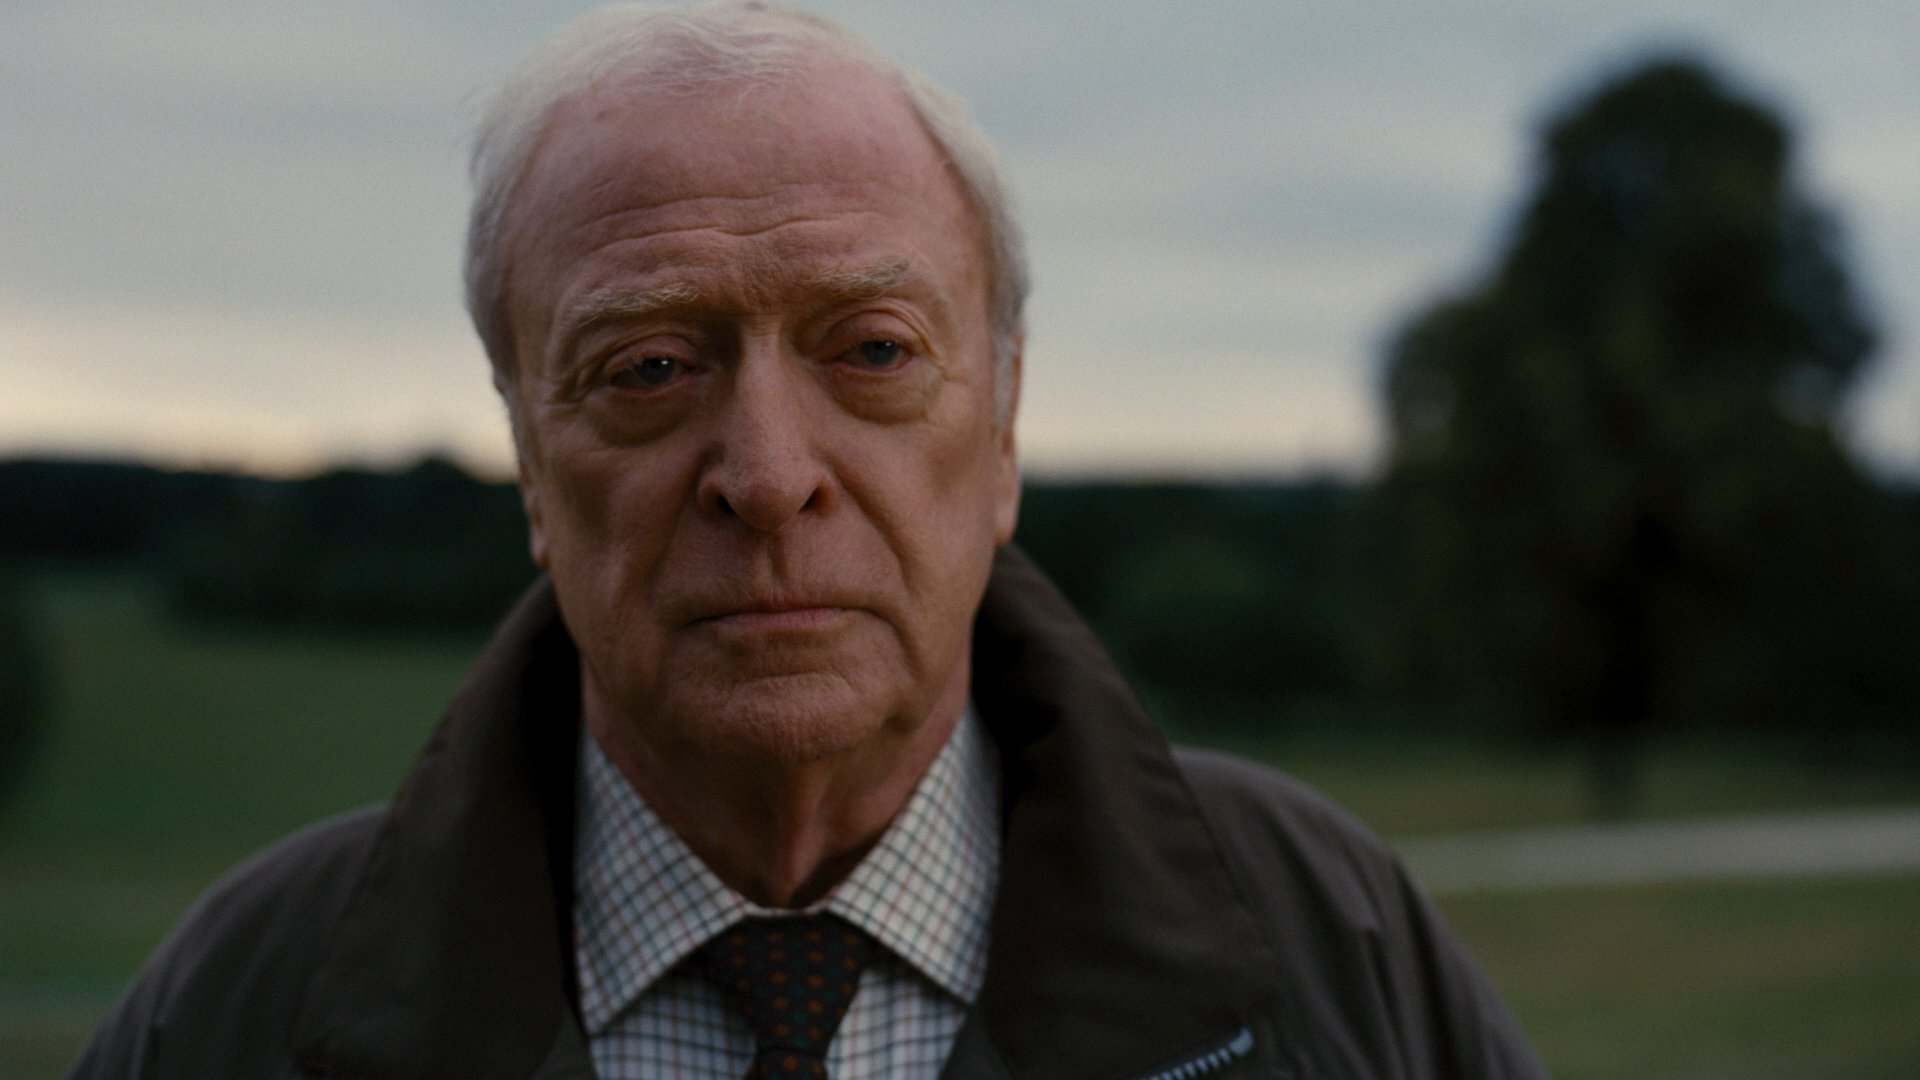 Michael Caine HQ wallpapers